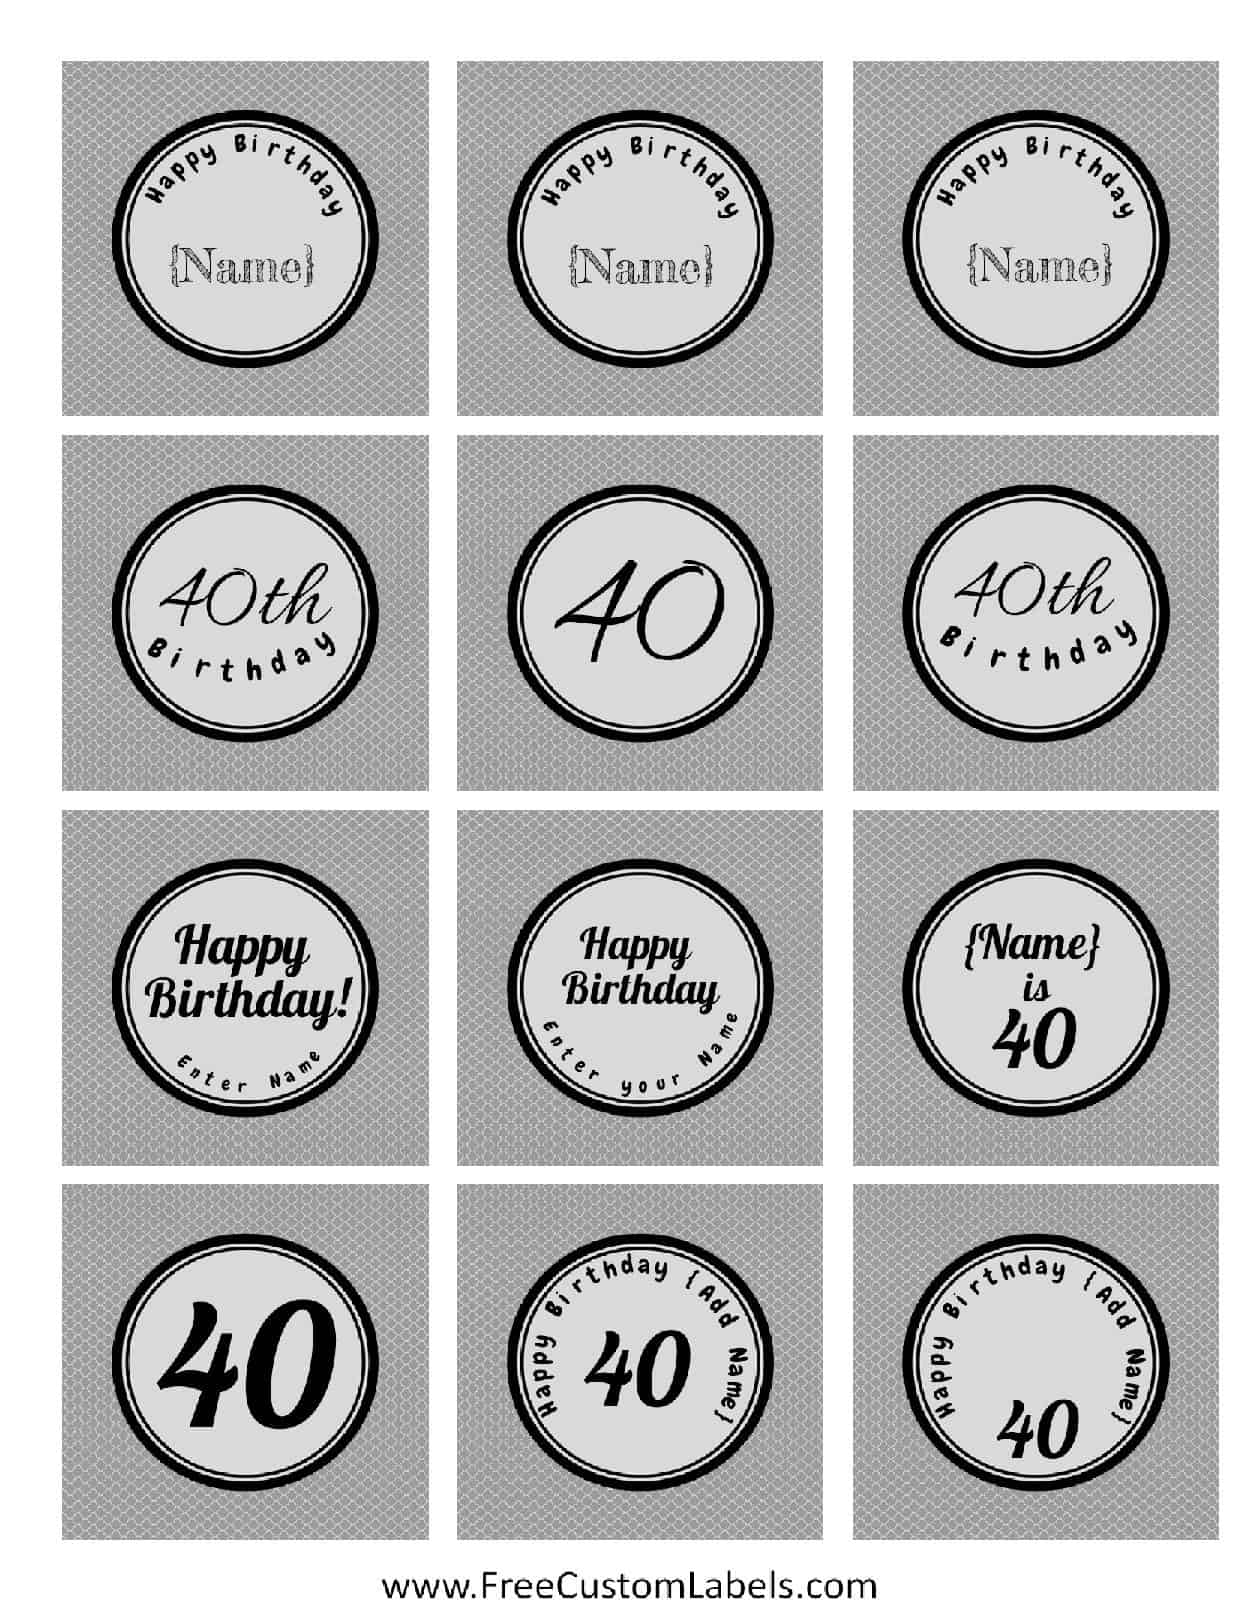 40th Birthday Presents >> 40th Birthday Cupcake Toppers - Free & Customizable